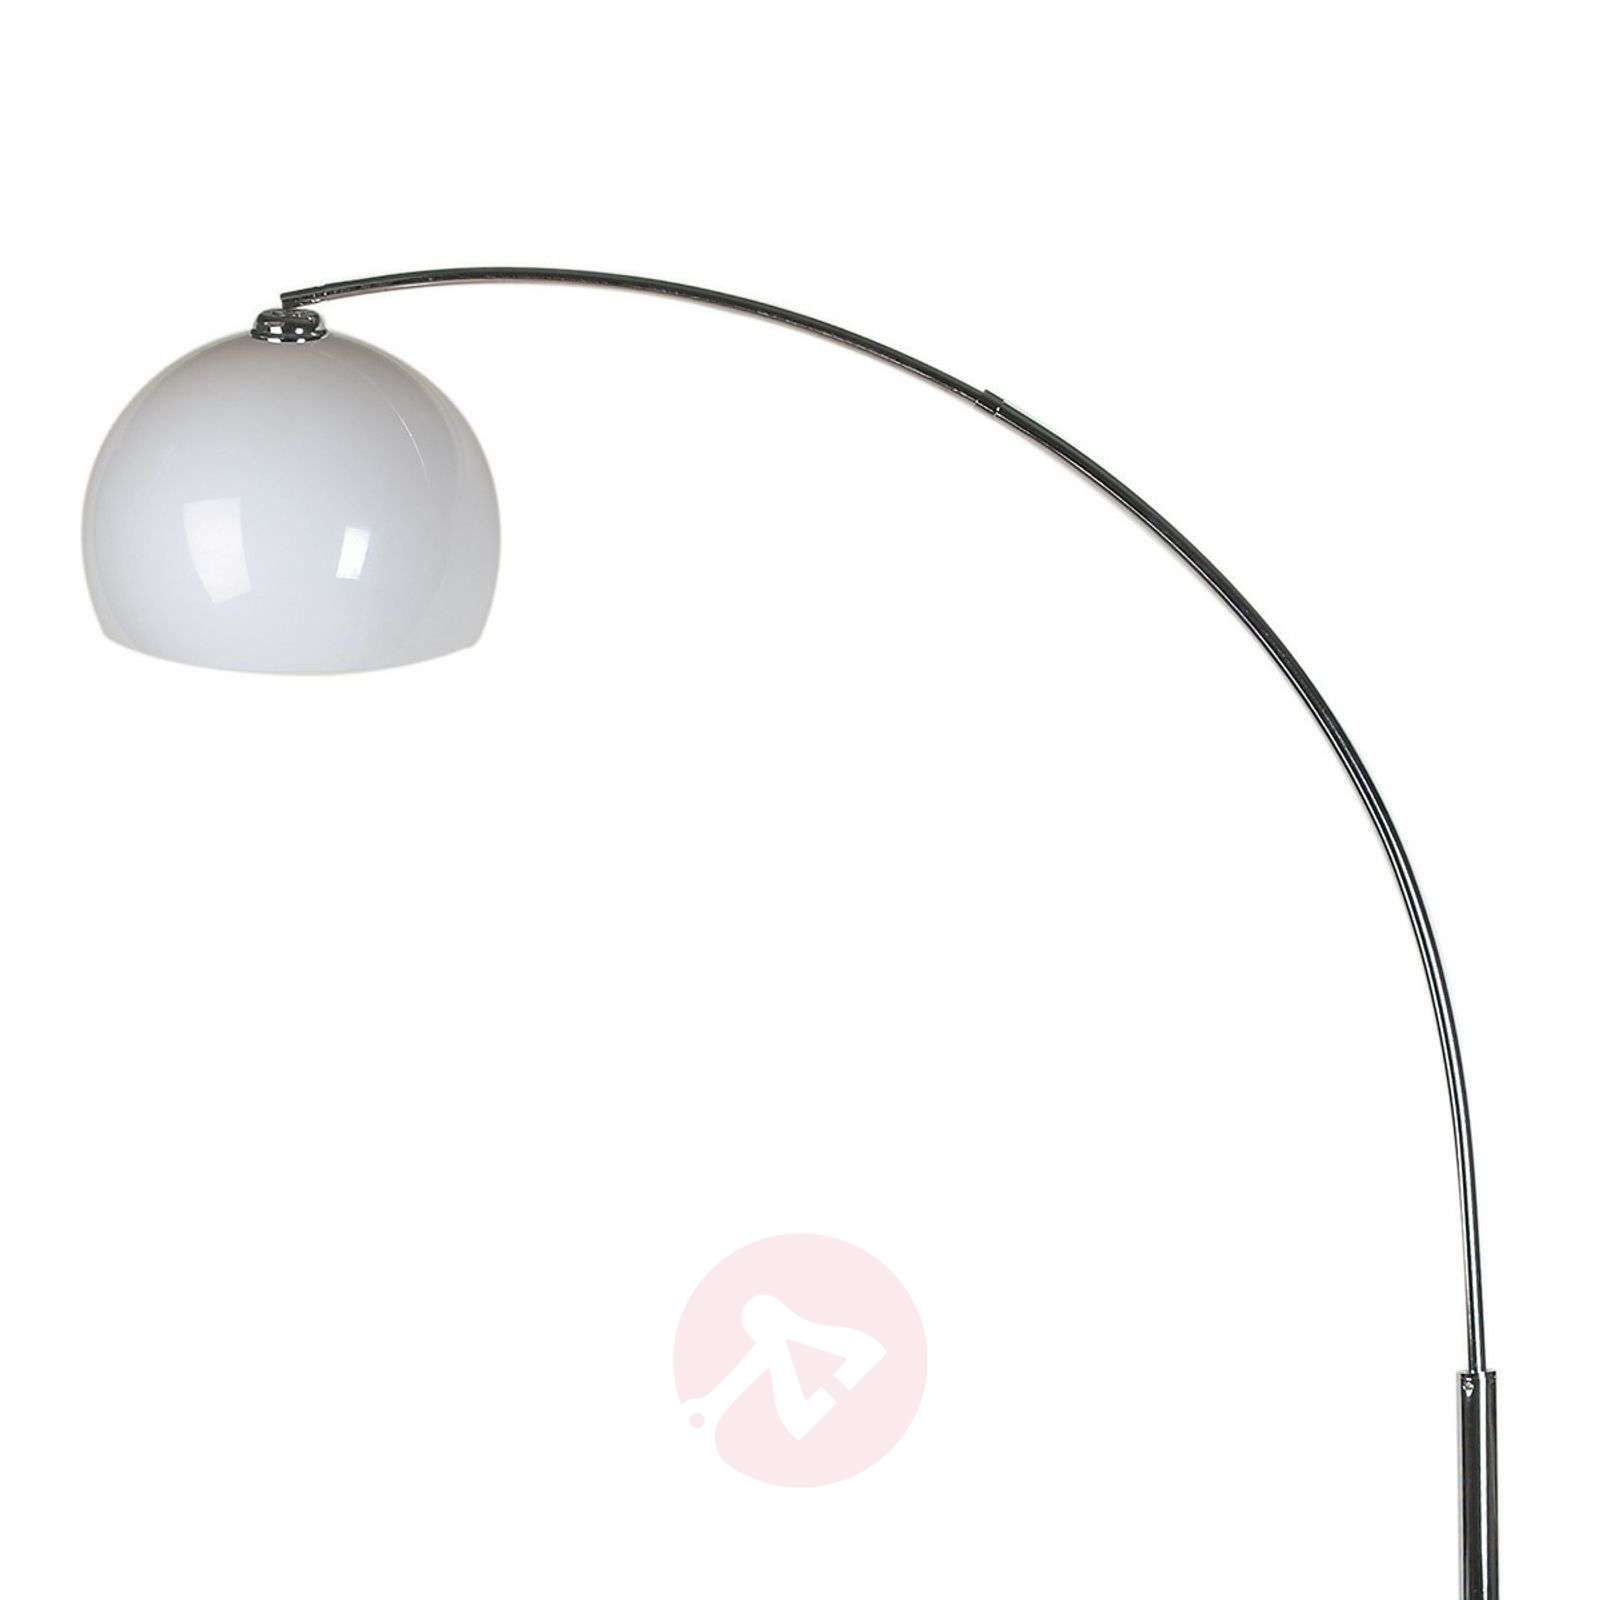 Lounge arc floor lamp with white lampshade lights lounge arc floor lamp with white lampshade 5517140 01 mozeypictures Choice Image